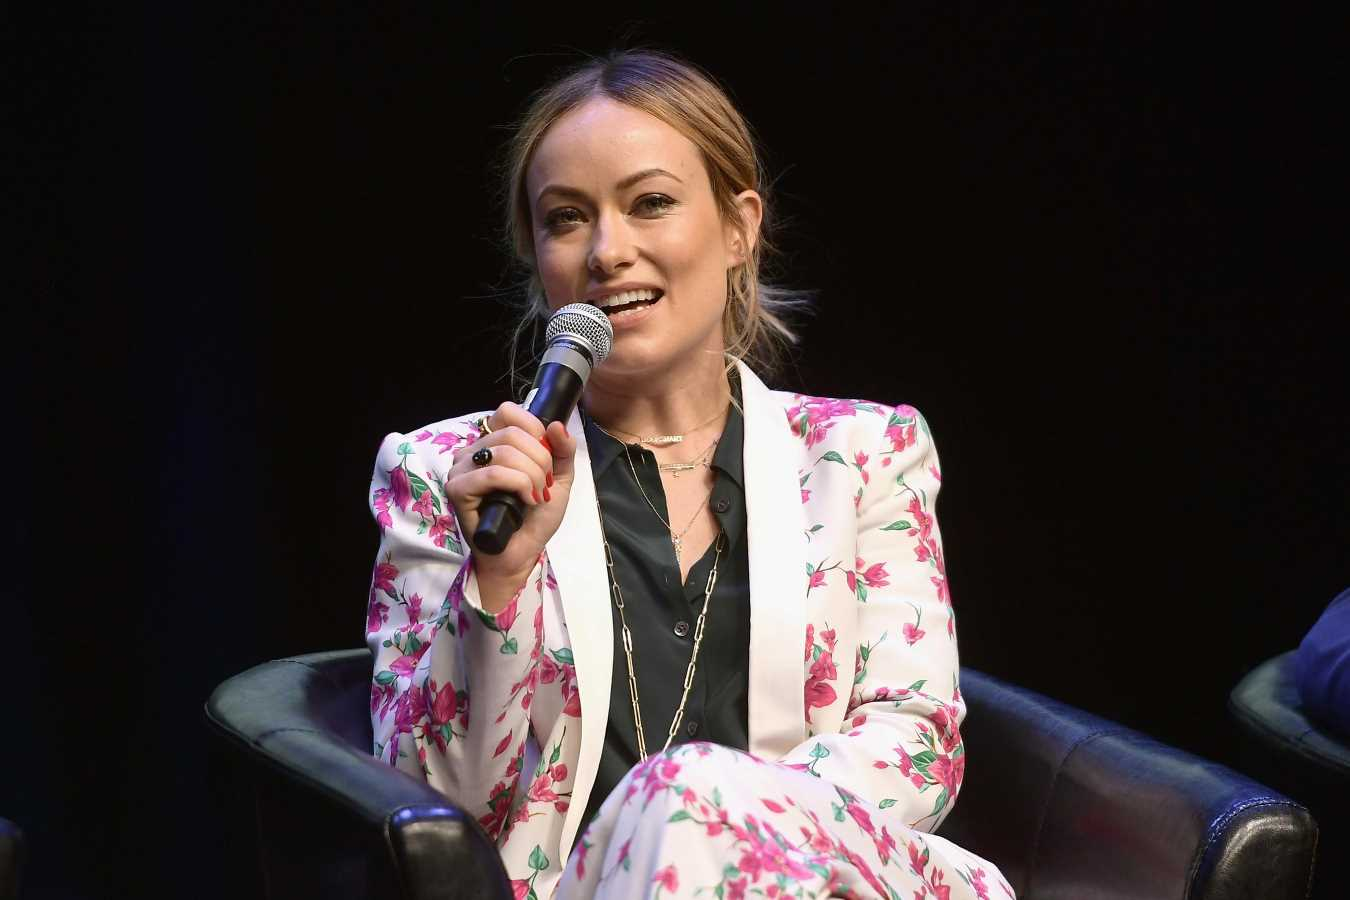 Olivia Wilde to direct thriller about a 1950s housewife